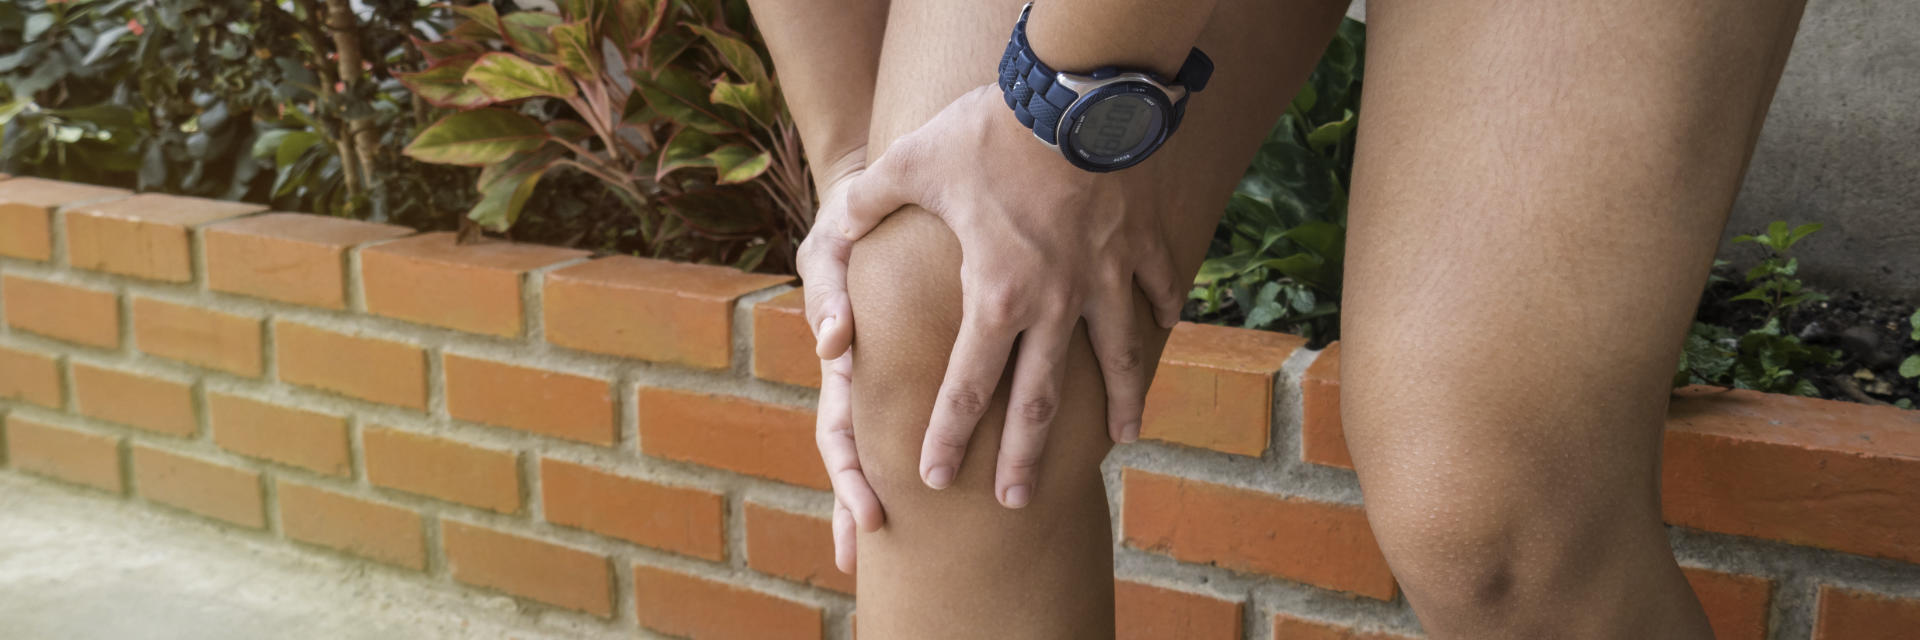 A person holding their knee in pain.